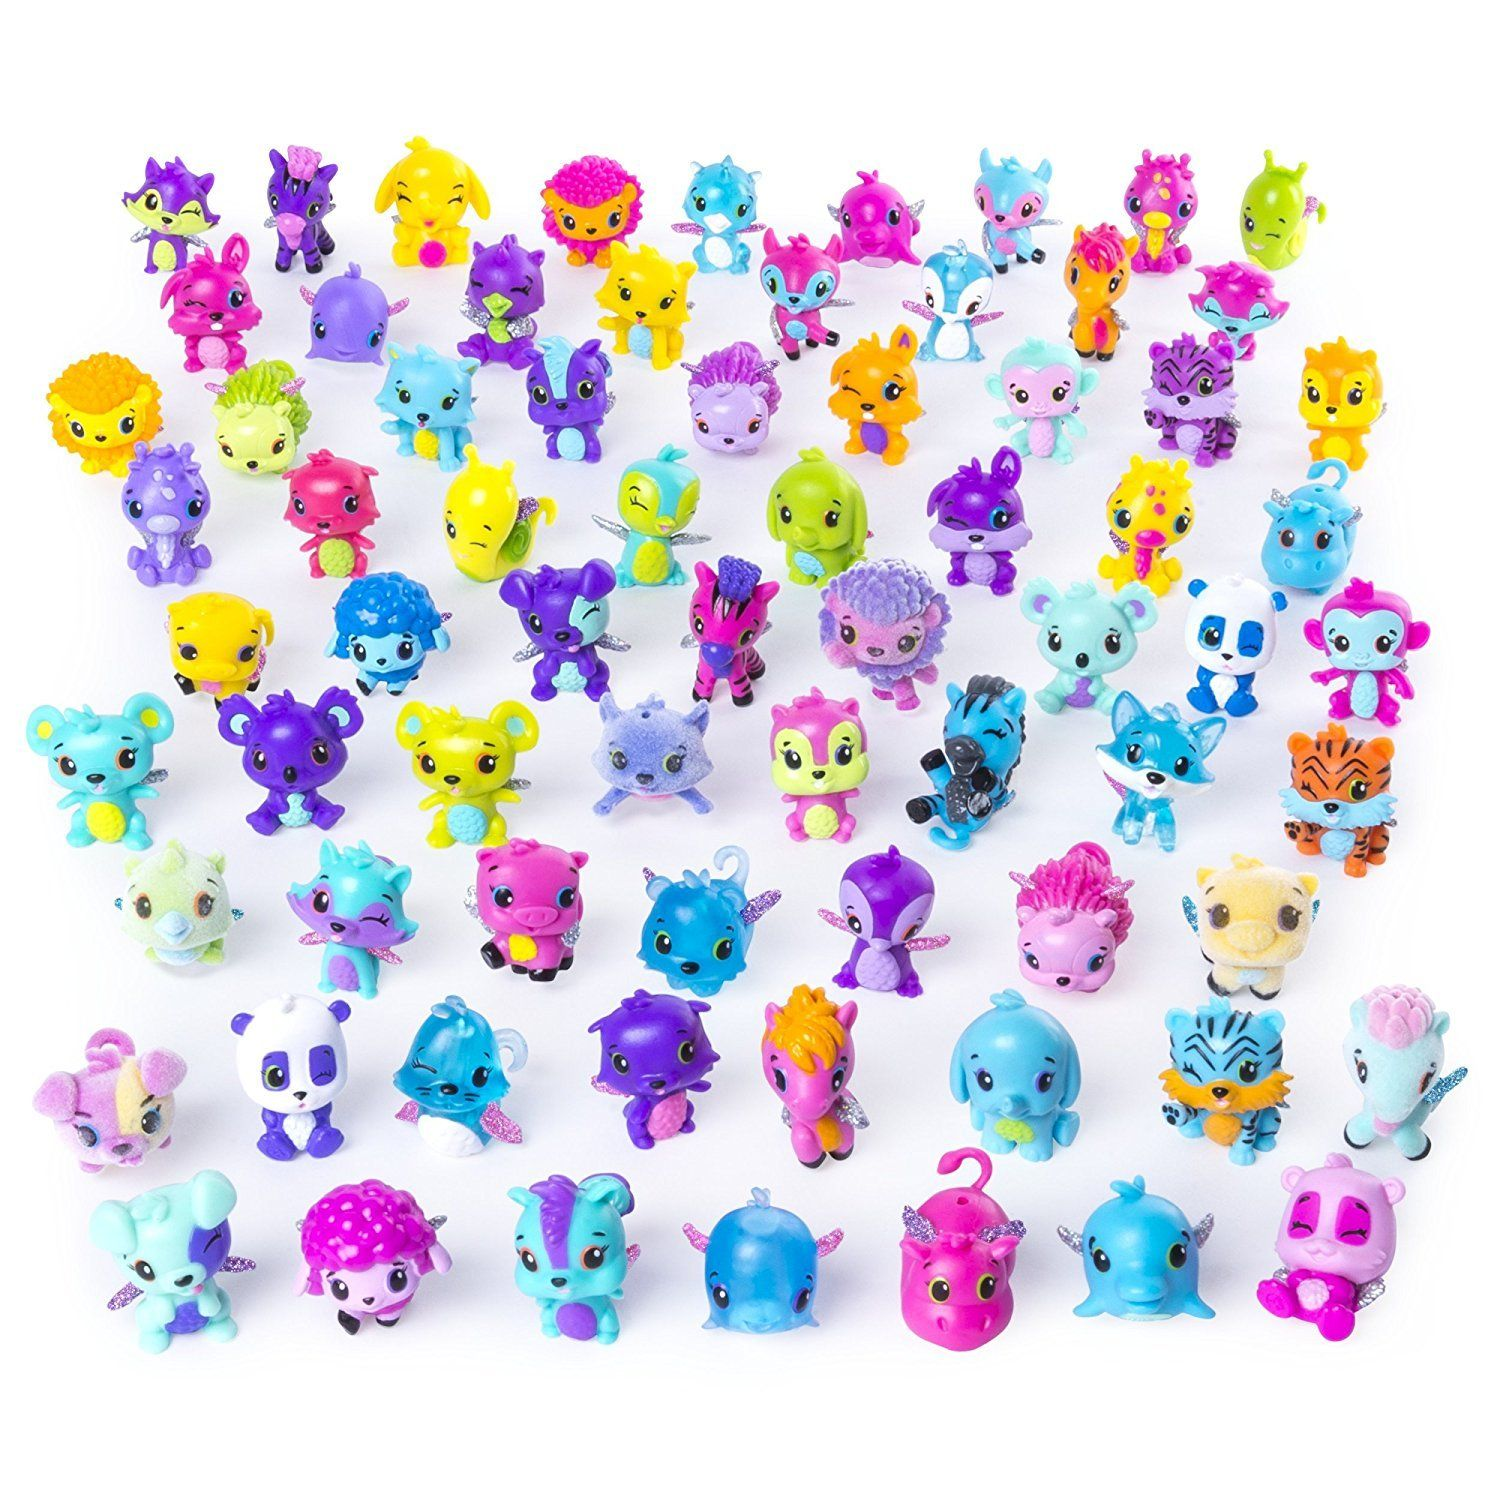 Celebrity Baby Trends is proud to introduce you to the NEW Hatchimals CollEGGtibles By Spin Master – sure to be the HOTTEST miniature toys to hit the market! These smaller Hatchimals are so m… #miniaturetoys